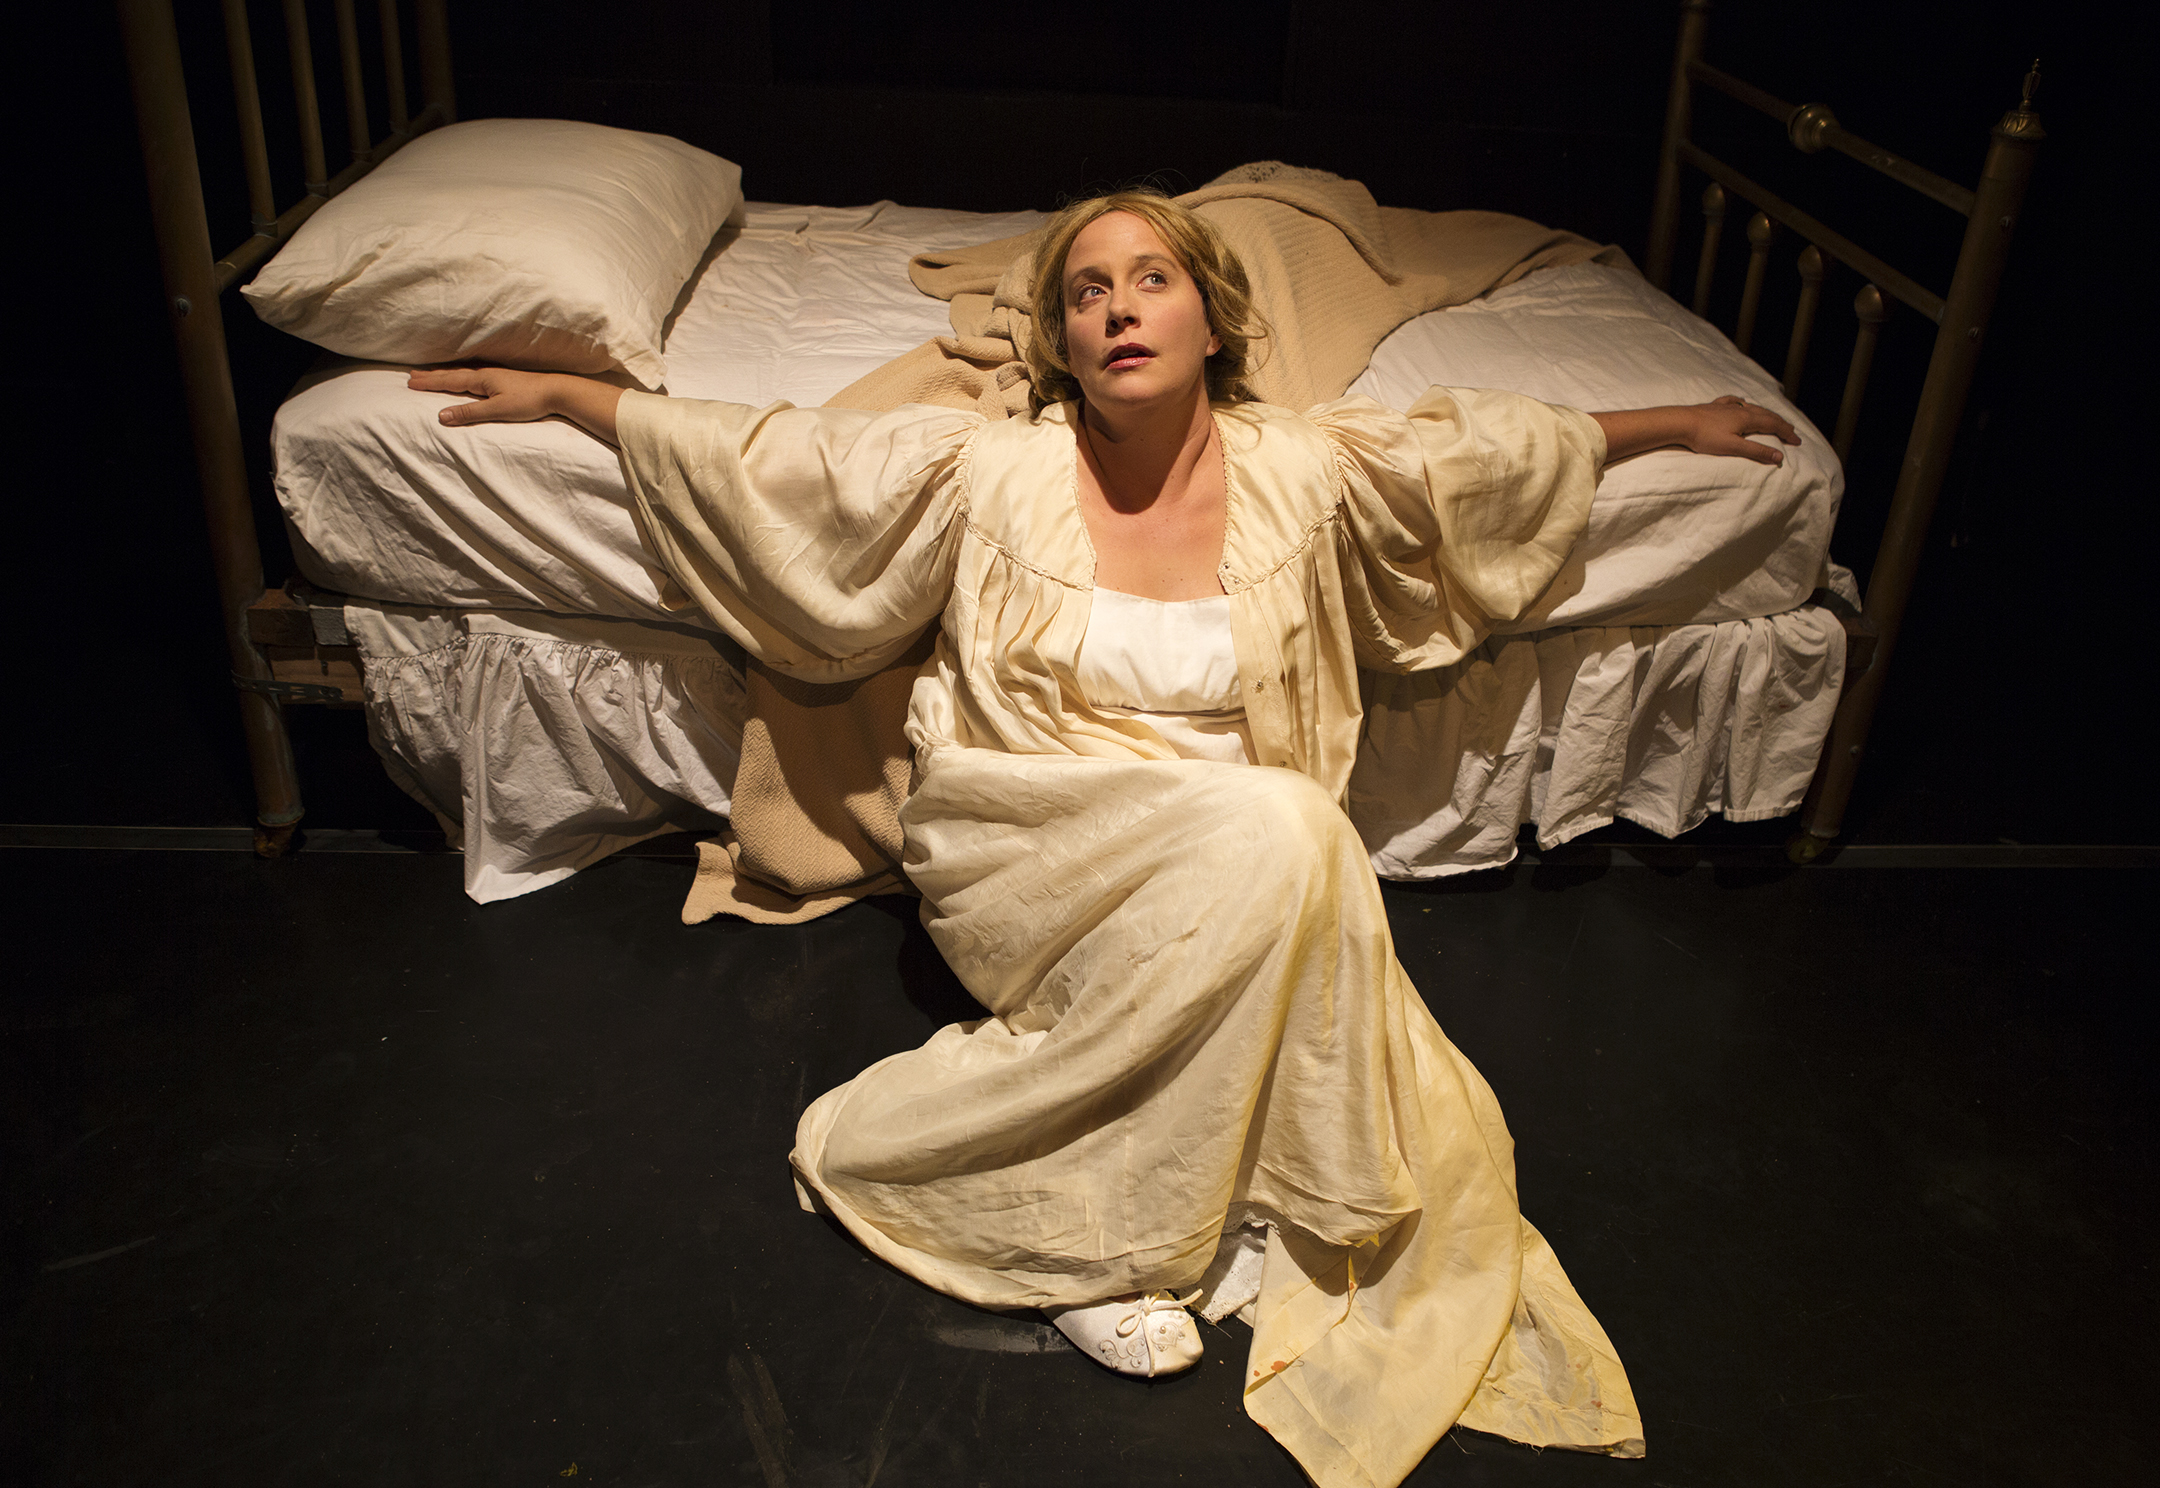 Deep & Provocative Two Plays for Lost Souls at the Scoundrel